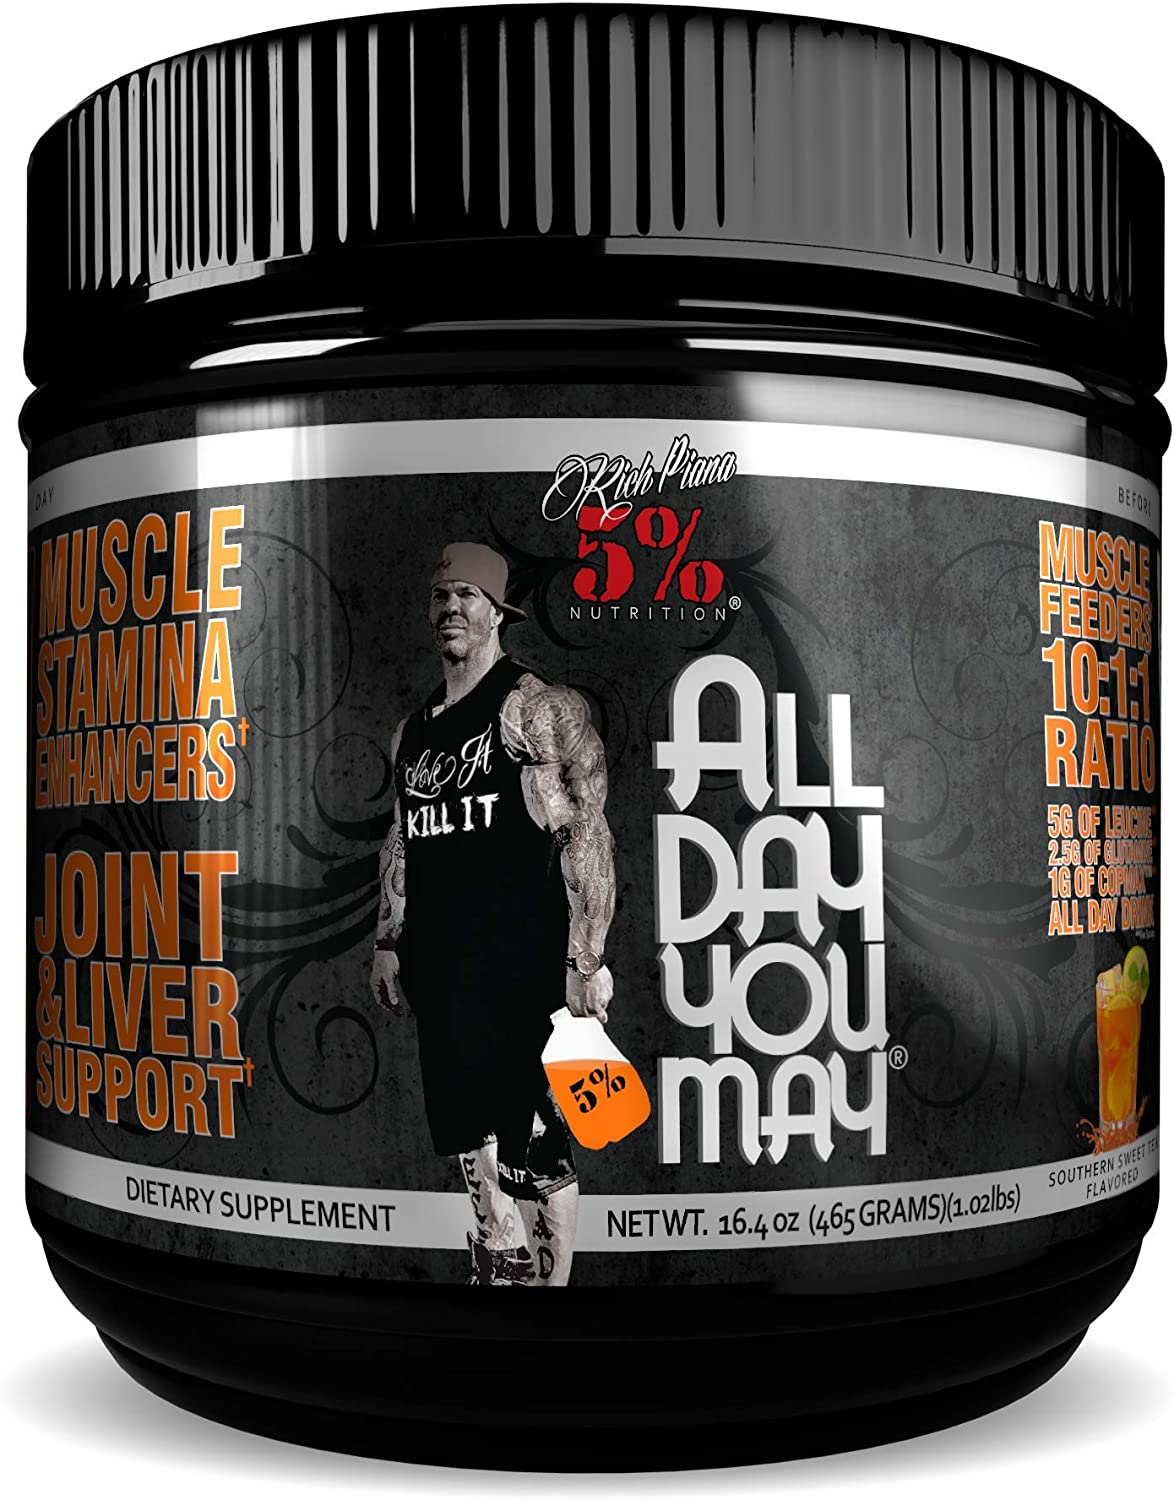 Rich Piana 5 Nutrition All Day You May BCAA Joint Recovery Drink Southern Sweet Tea